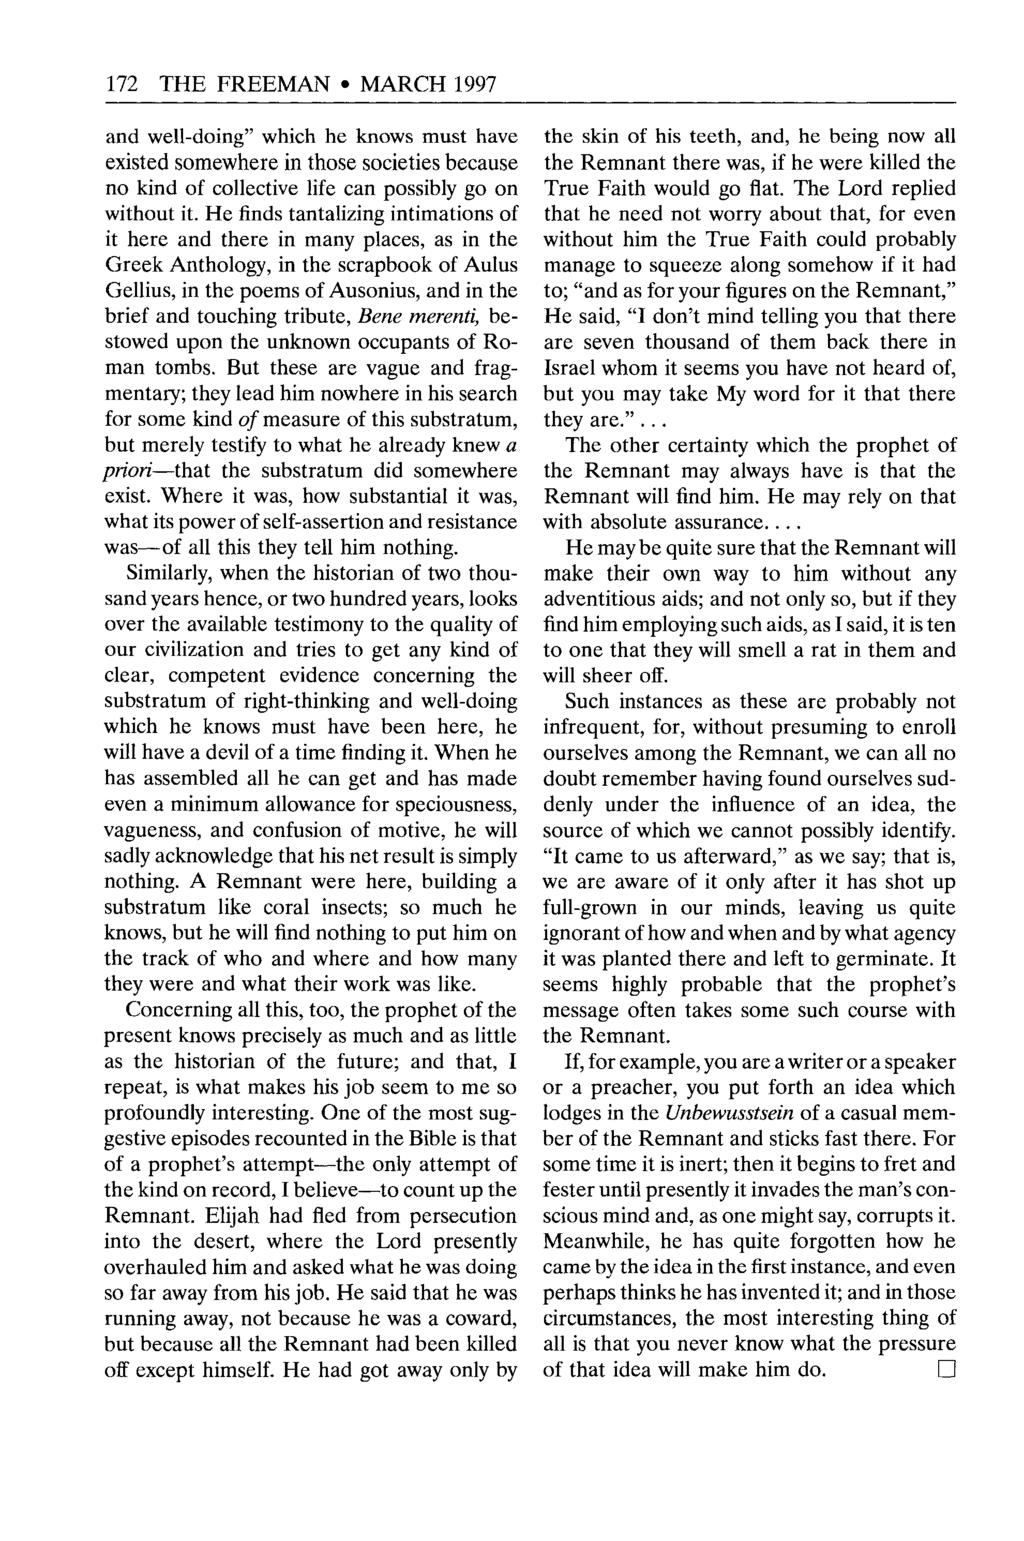 "172 THE FREEMAN MARCH 1997 and well-doing"" which he knows must have existed somewhere in those societies because no kind of collective life can possibly go on without it."